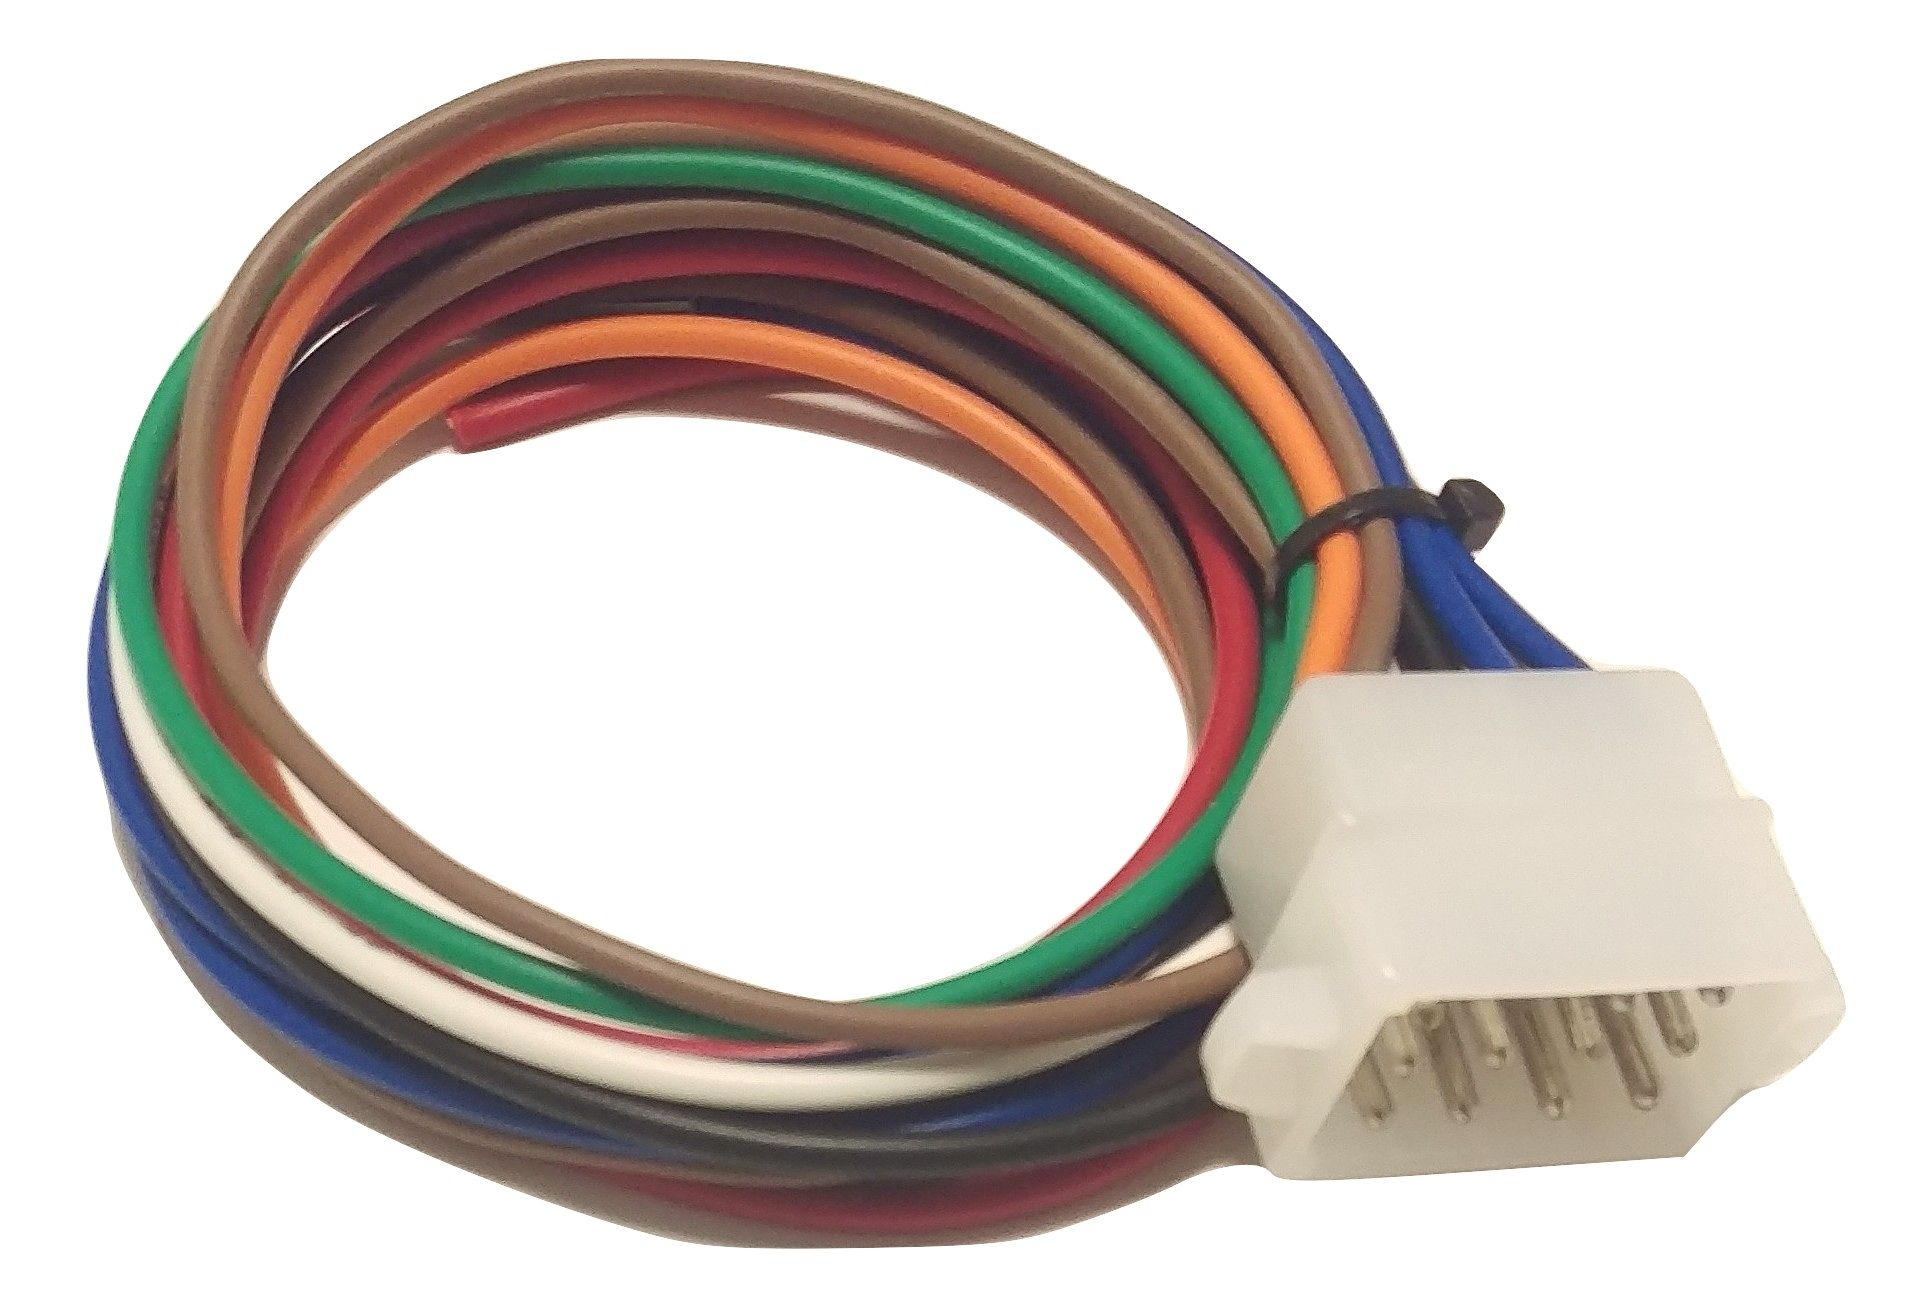 [SCHEMATICS_4PO]  Galls Power Harness Plug Cable 12 Pin ST240 | 12 Pin Wiring Harness Connectors Plug |  | 911 Emergency Supply